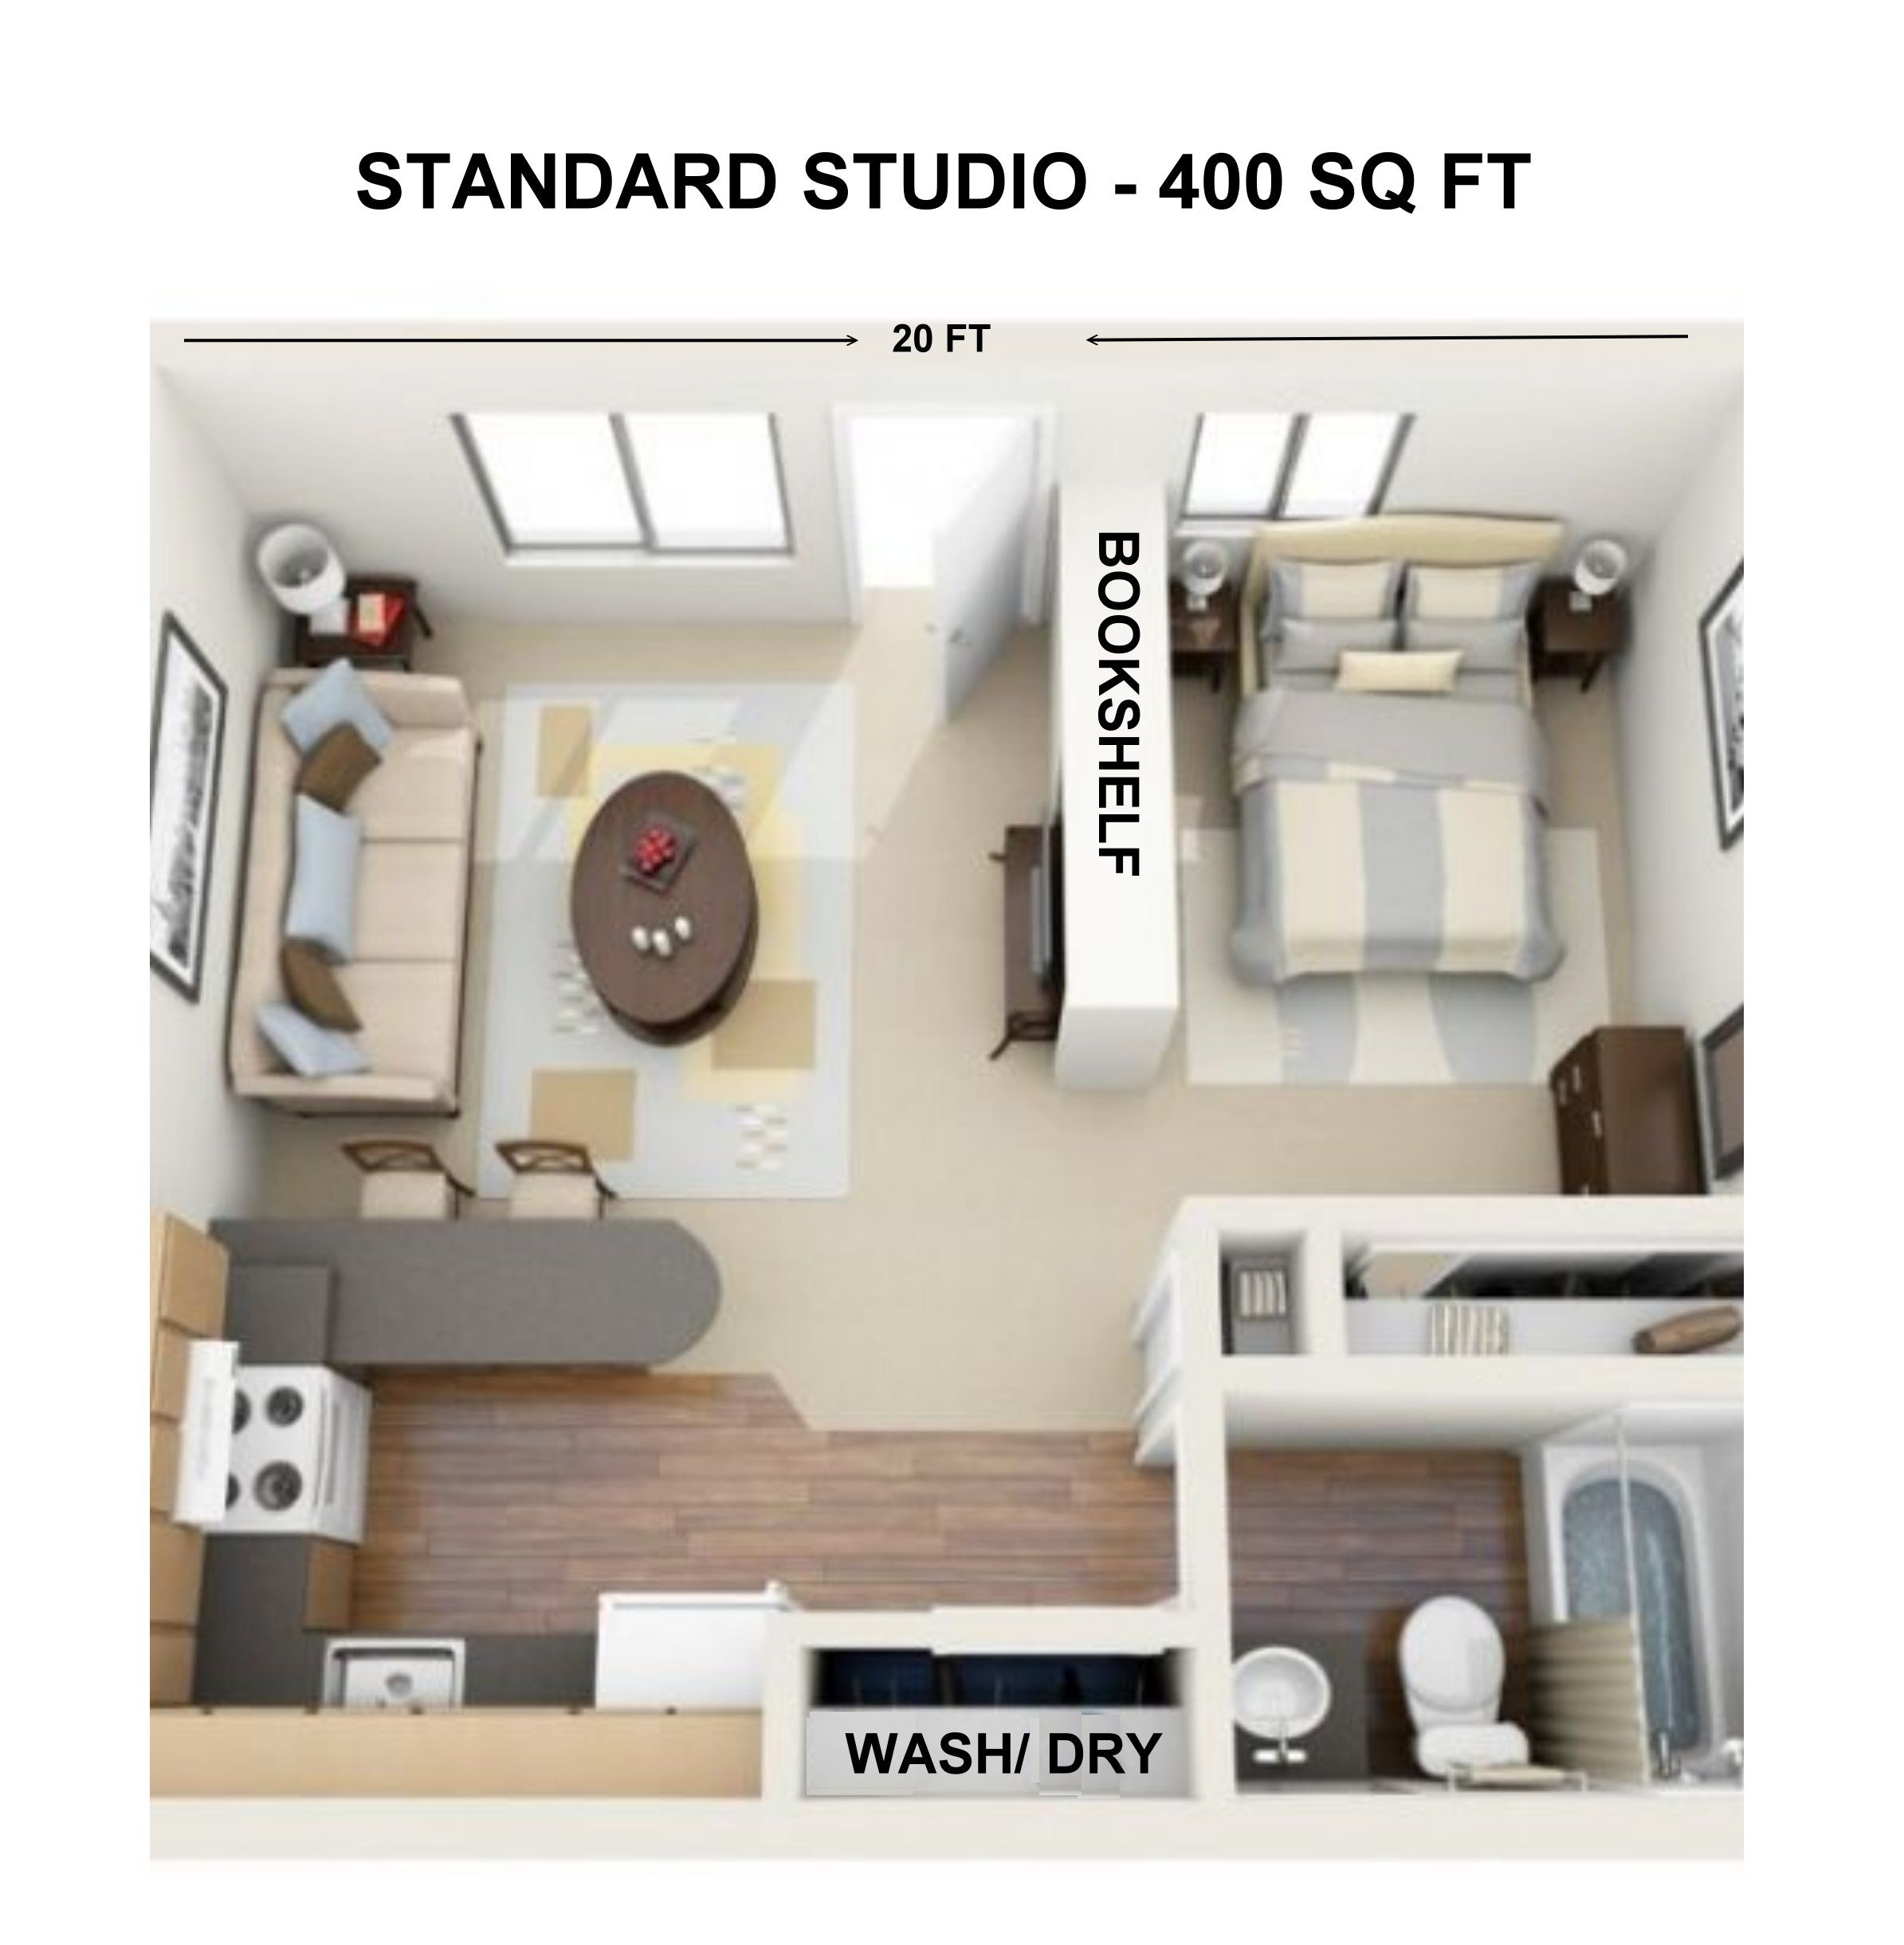 Studio Apartment Layout Studio Apartment Floor Plans Studio Floor Plans Studio Apartment Decorating